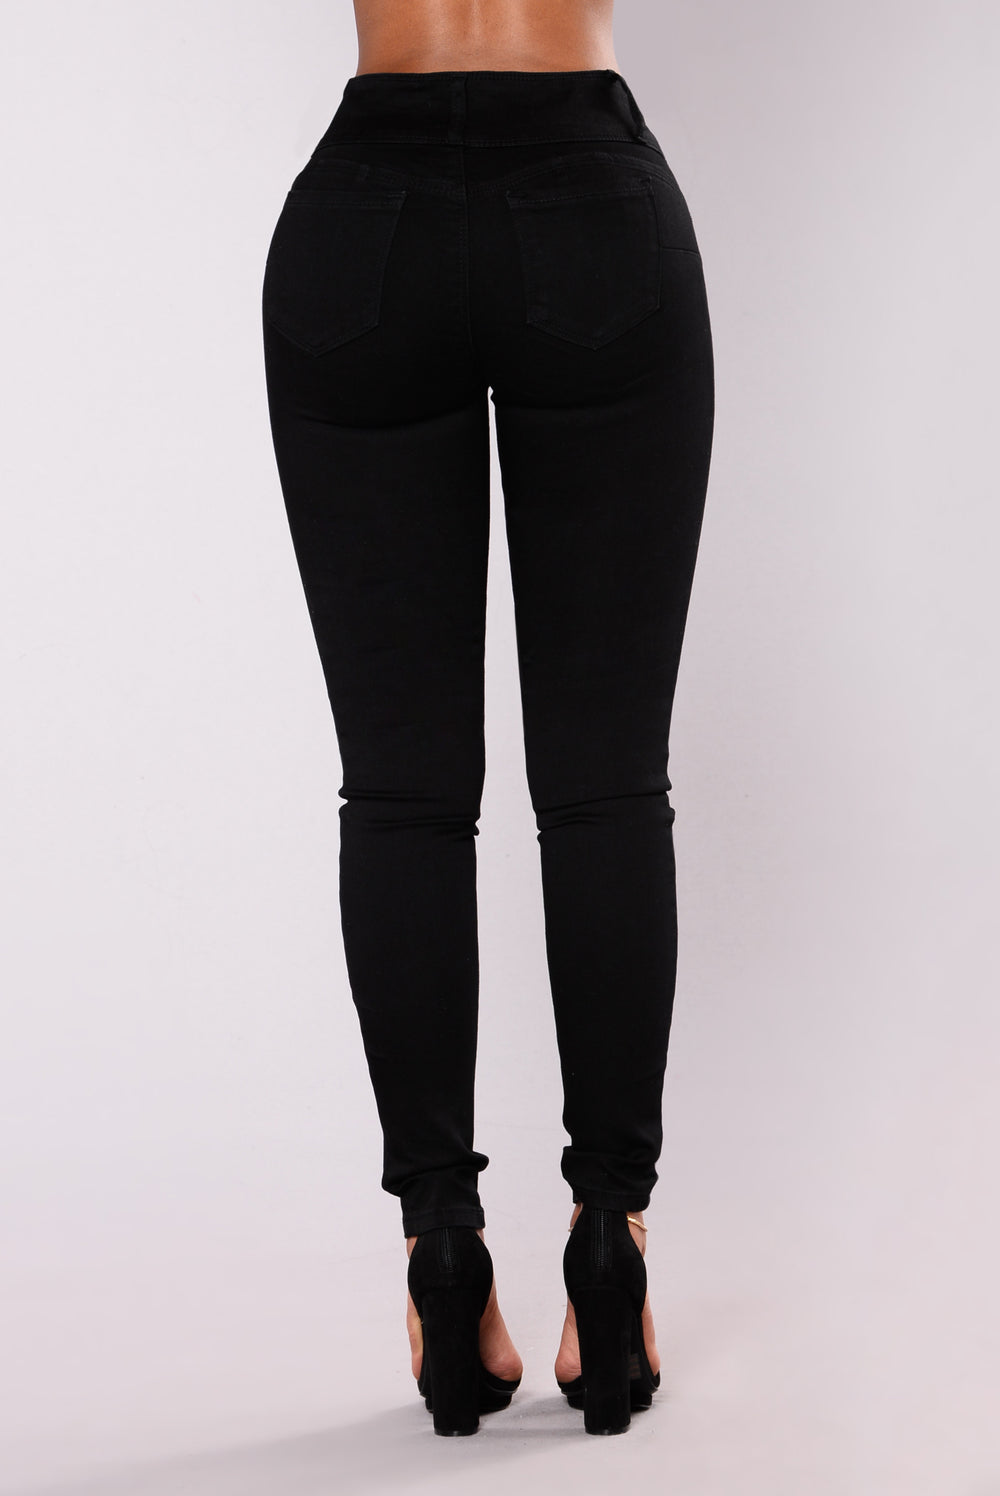 Round Of Applause Booty Shaped Jeans - Black-2927